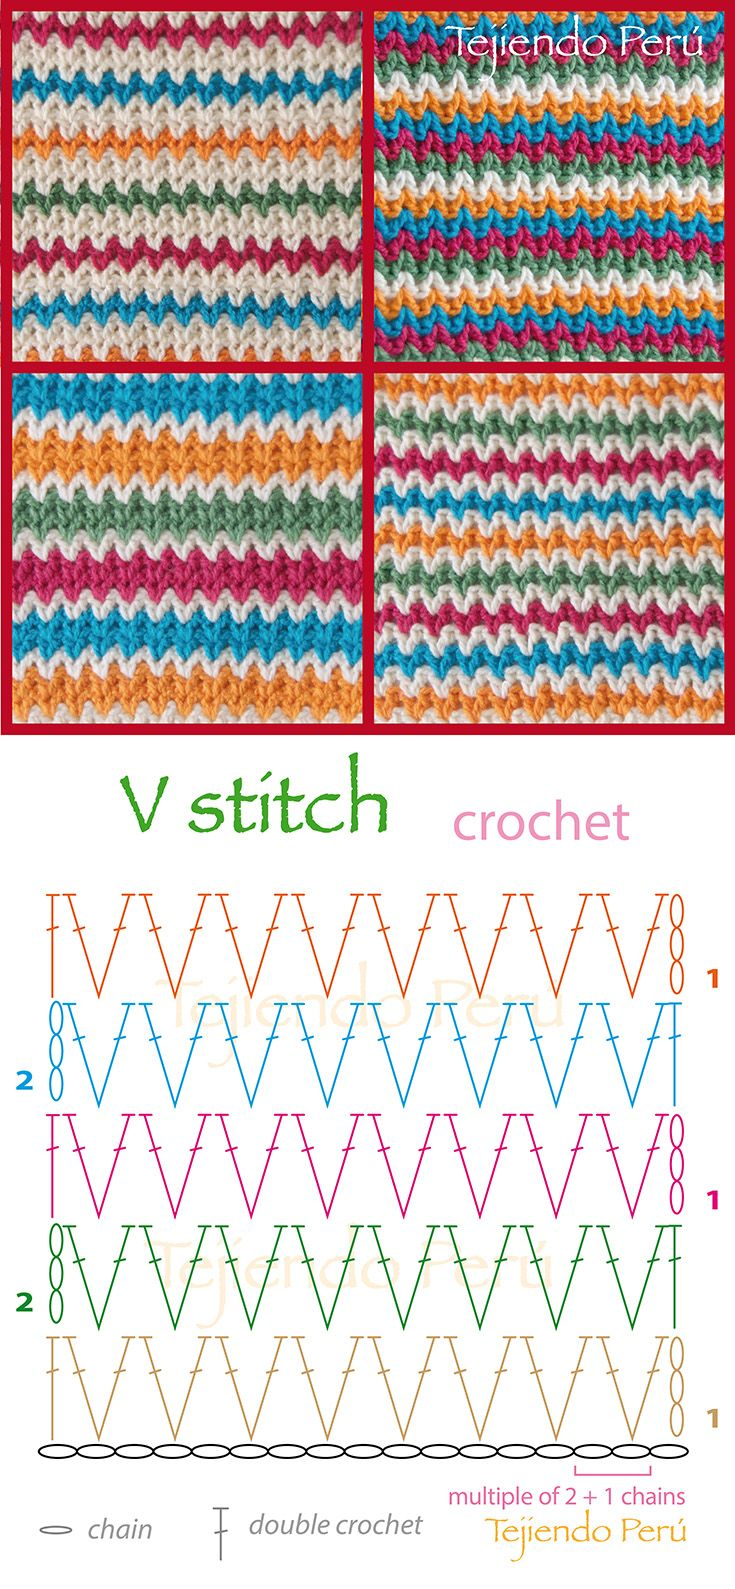 Crochet V stitch pattern (diagram or chart)! | Häkeln | Pinterest ...